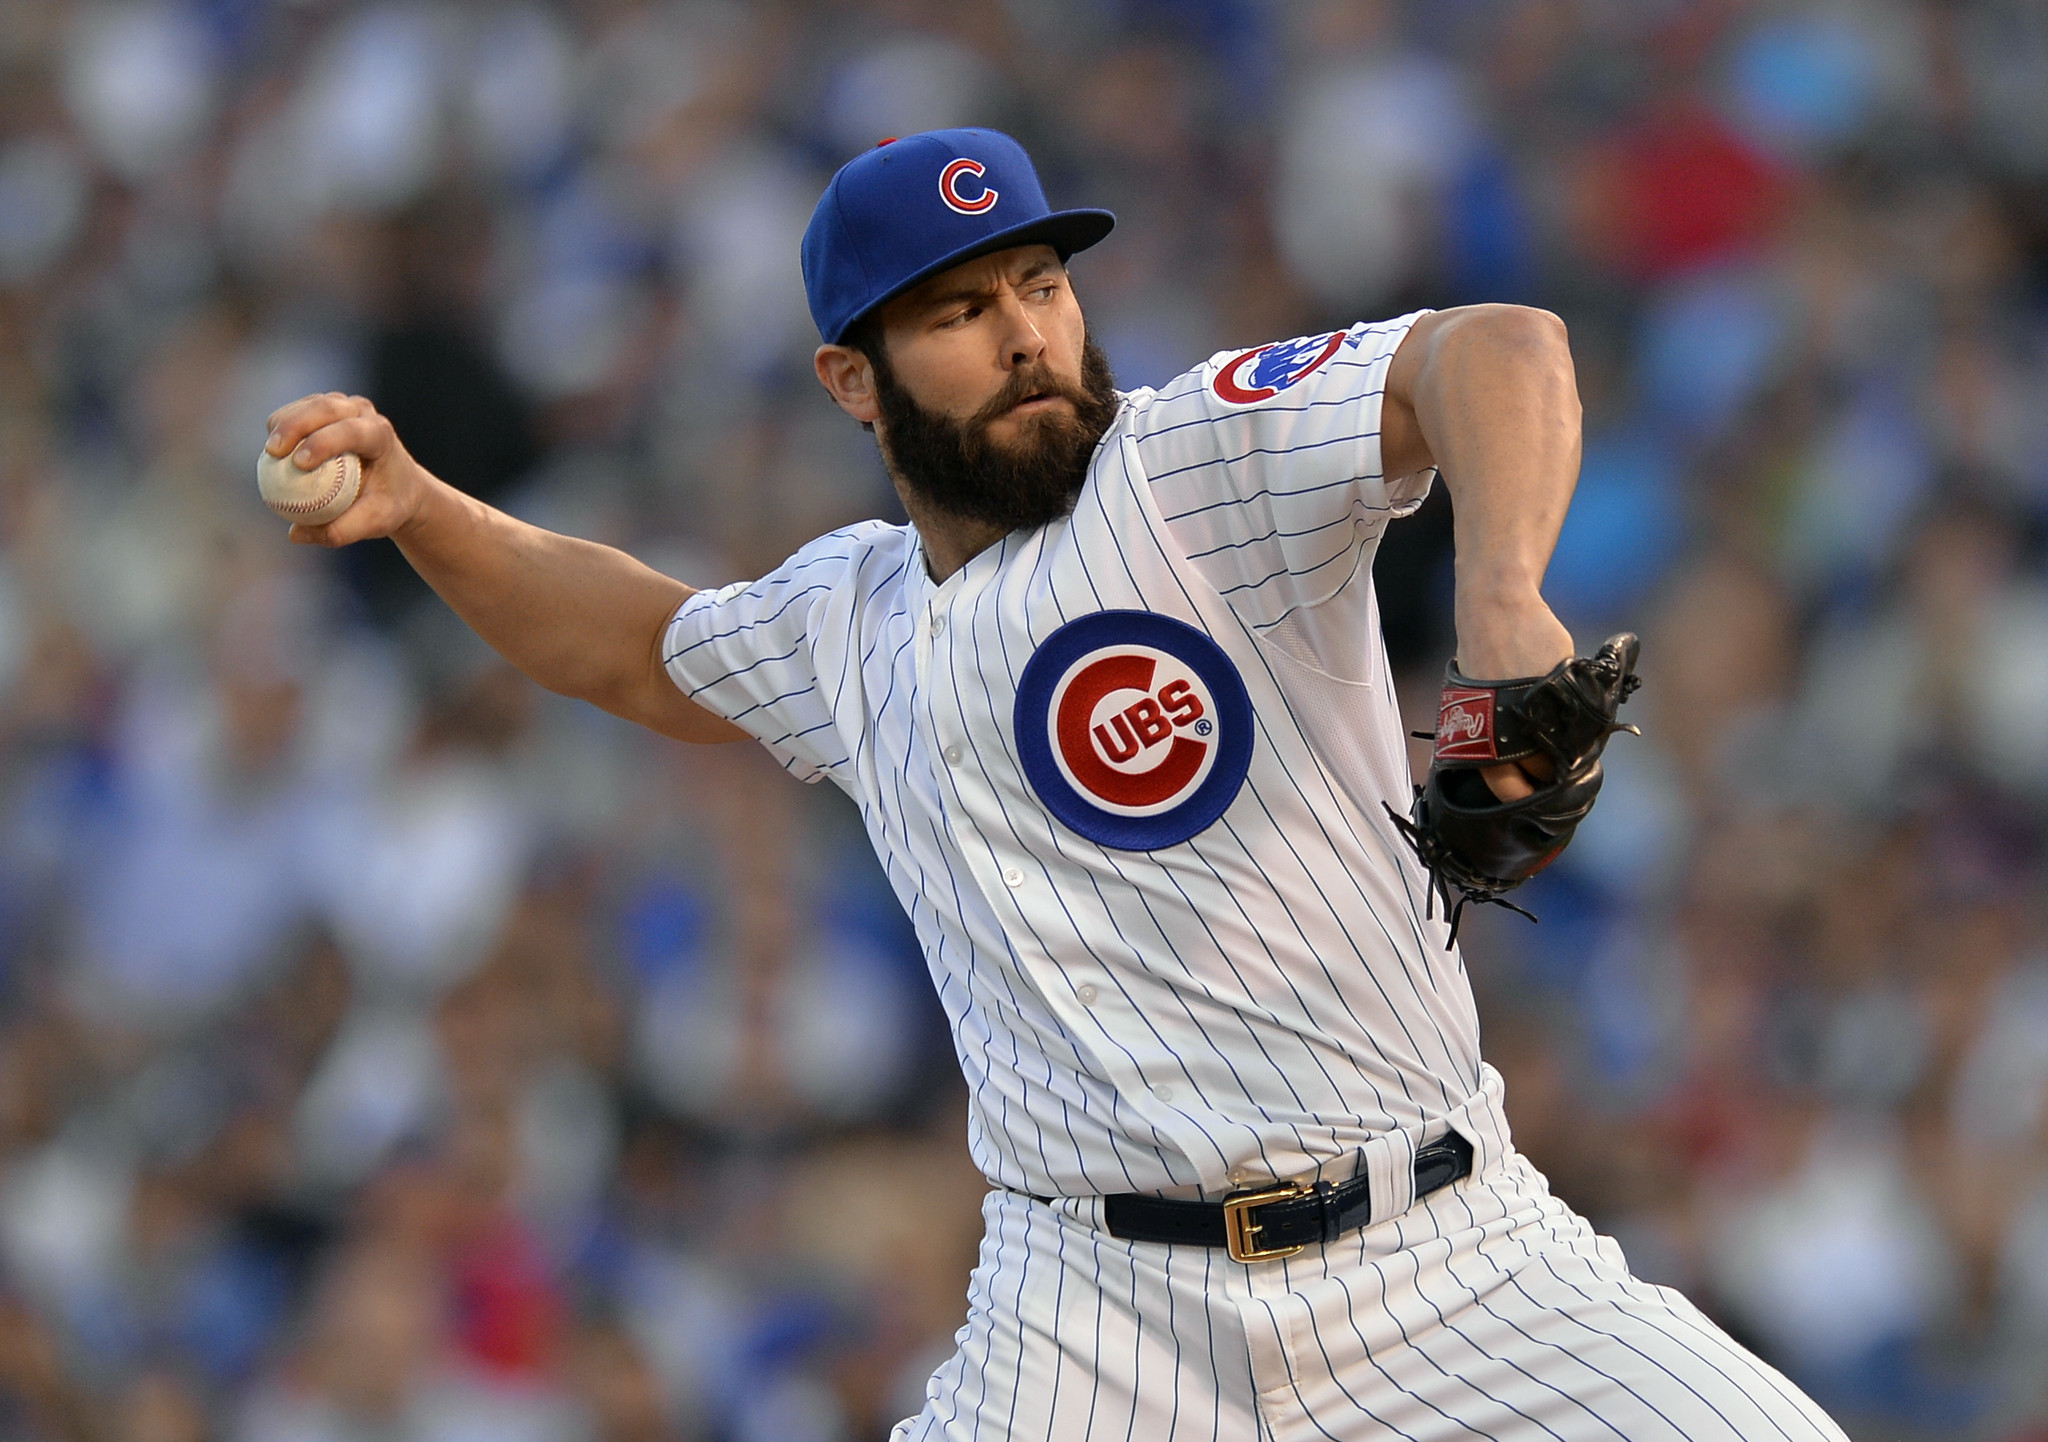 Ct-cubs-arrieta-contract-spt-20160205